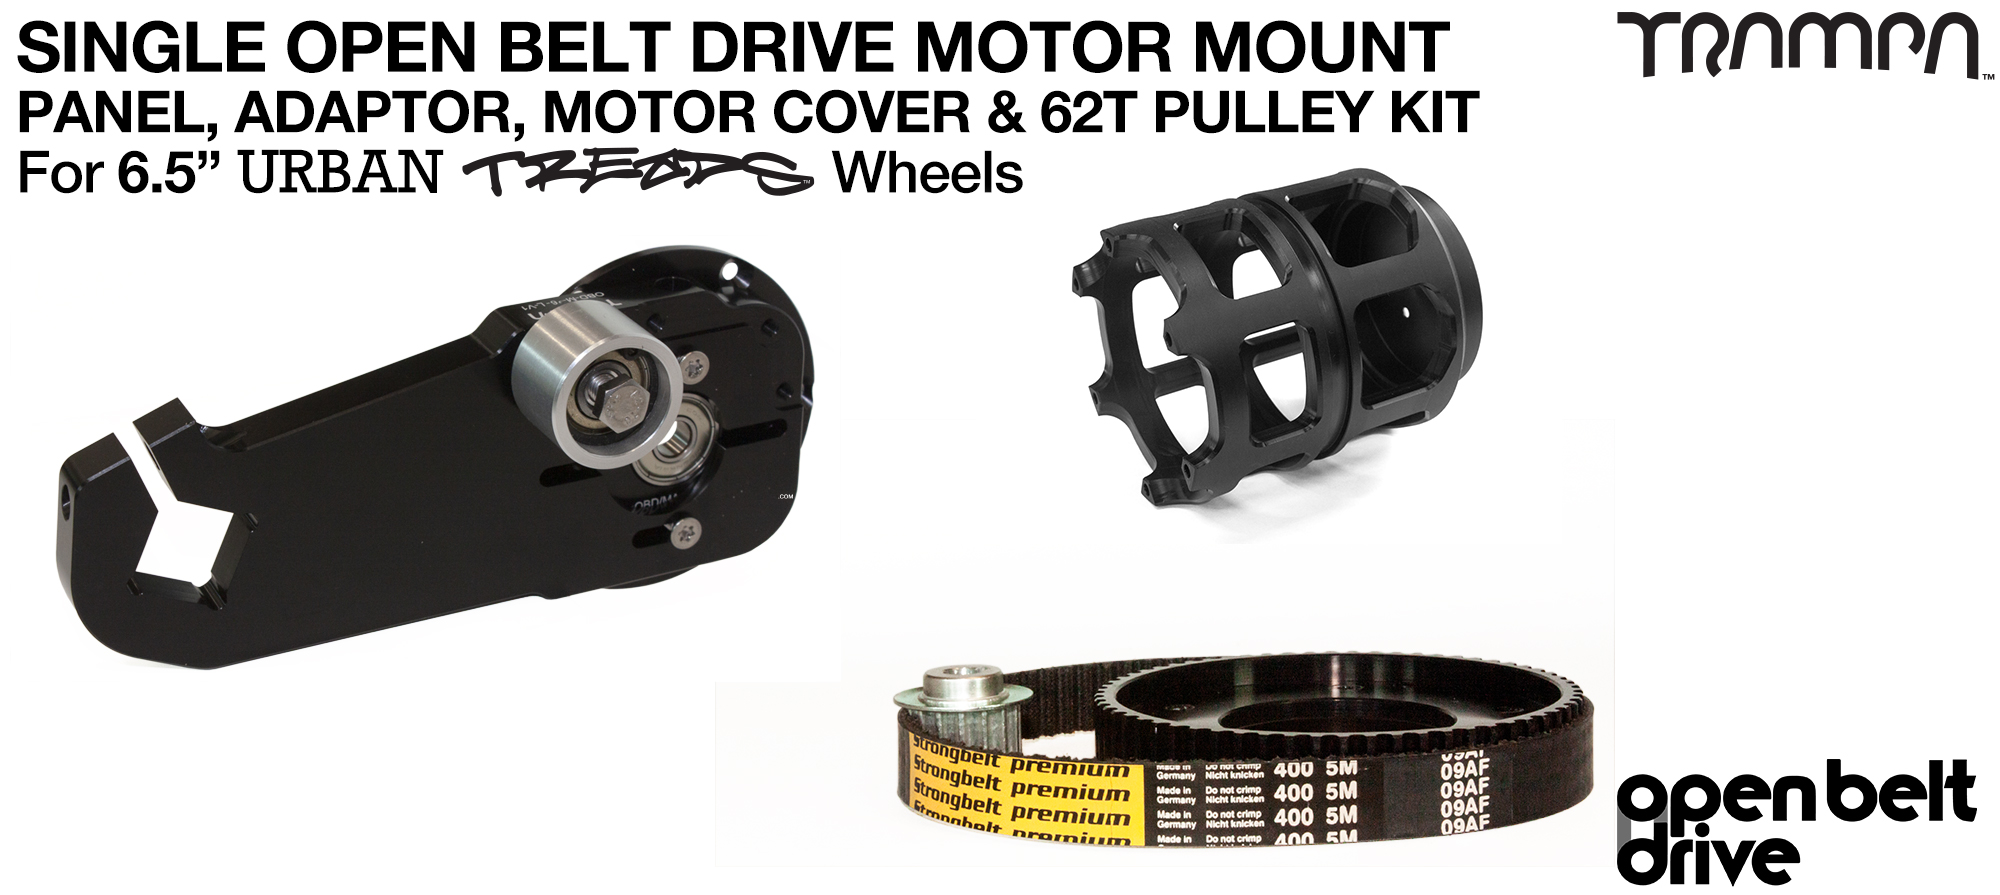 66T OBD Motor Mount with 62Tooth Pulley kit & Motor Filters - SINGLE